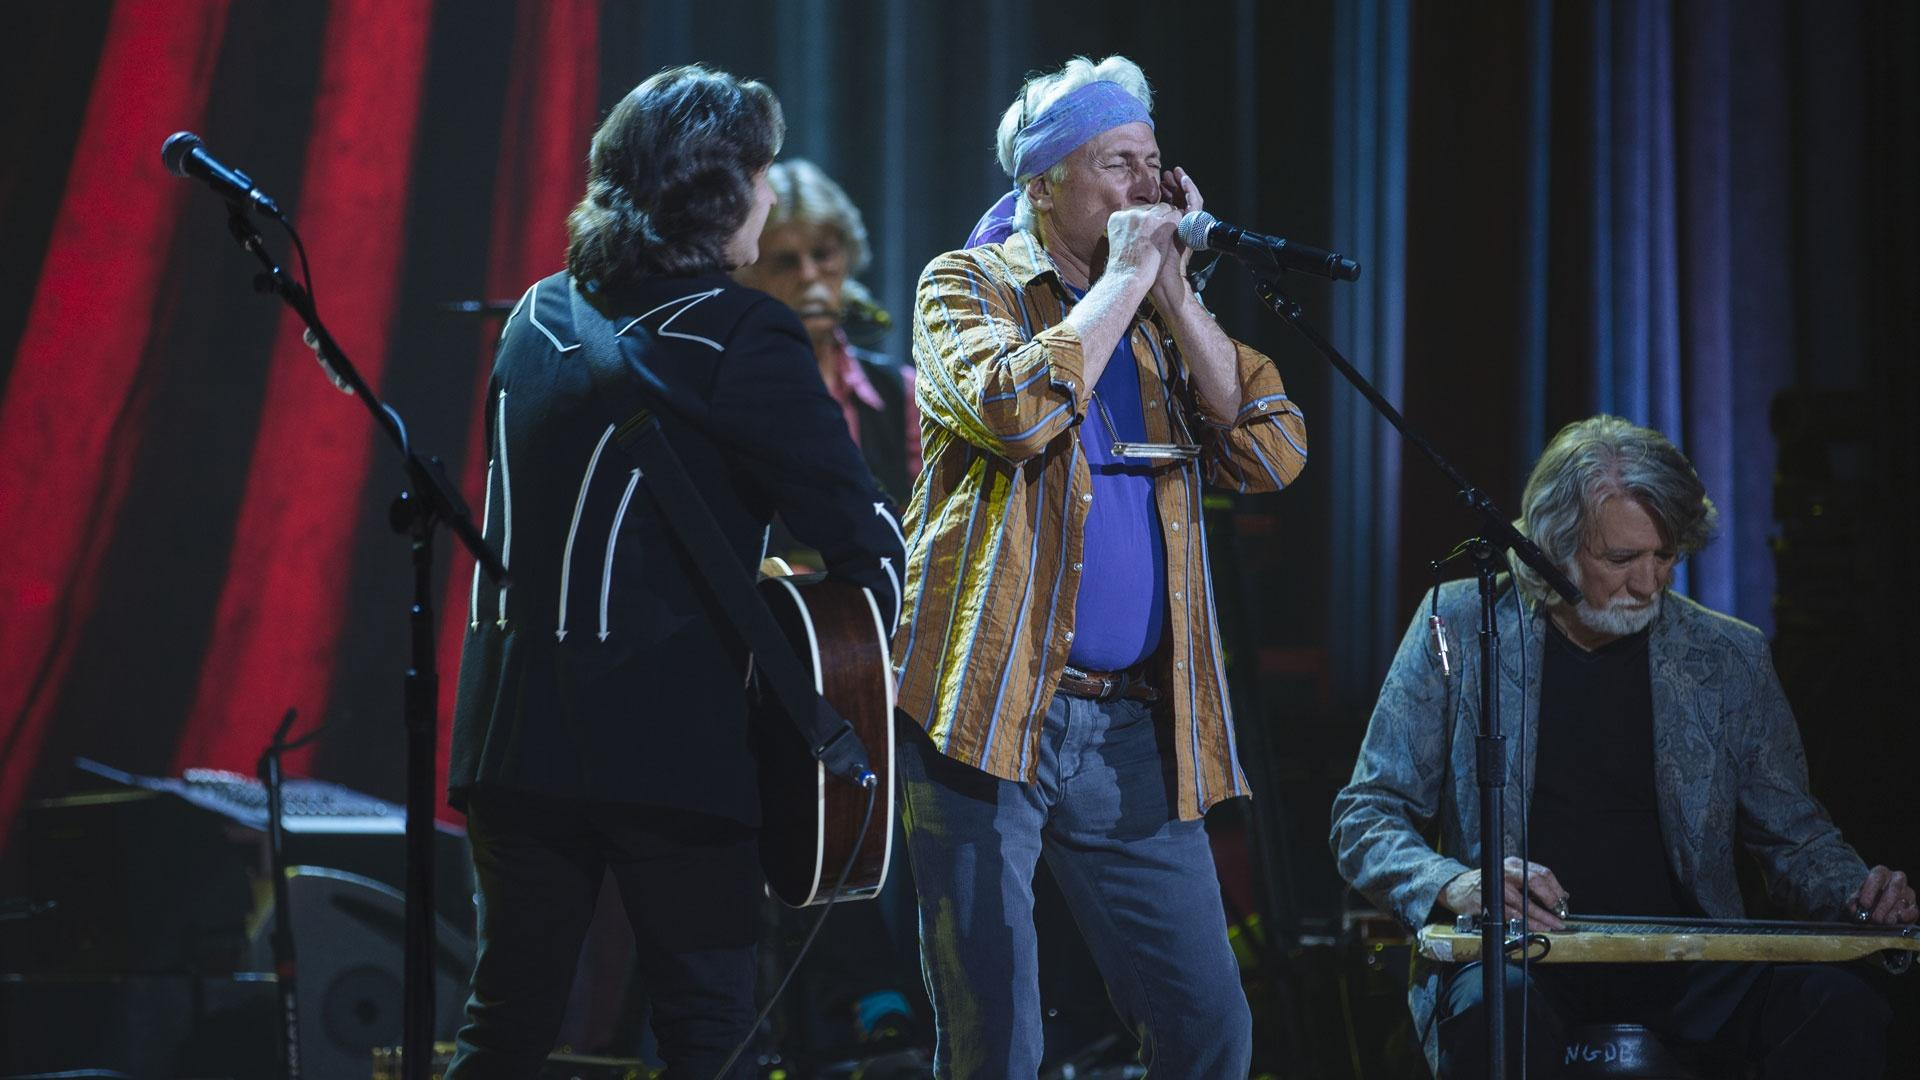 Jeff Hanna, Bob Carpenter, Jimmie Fadden, John McEuen: the original core group of Nitty Gritty Dirt Band doing there thing as they have for an unprecedented 50 Years!